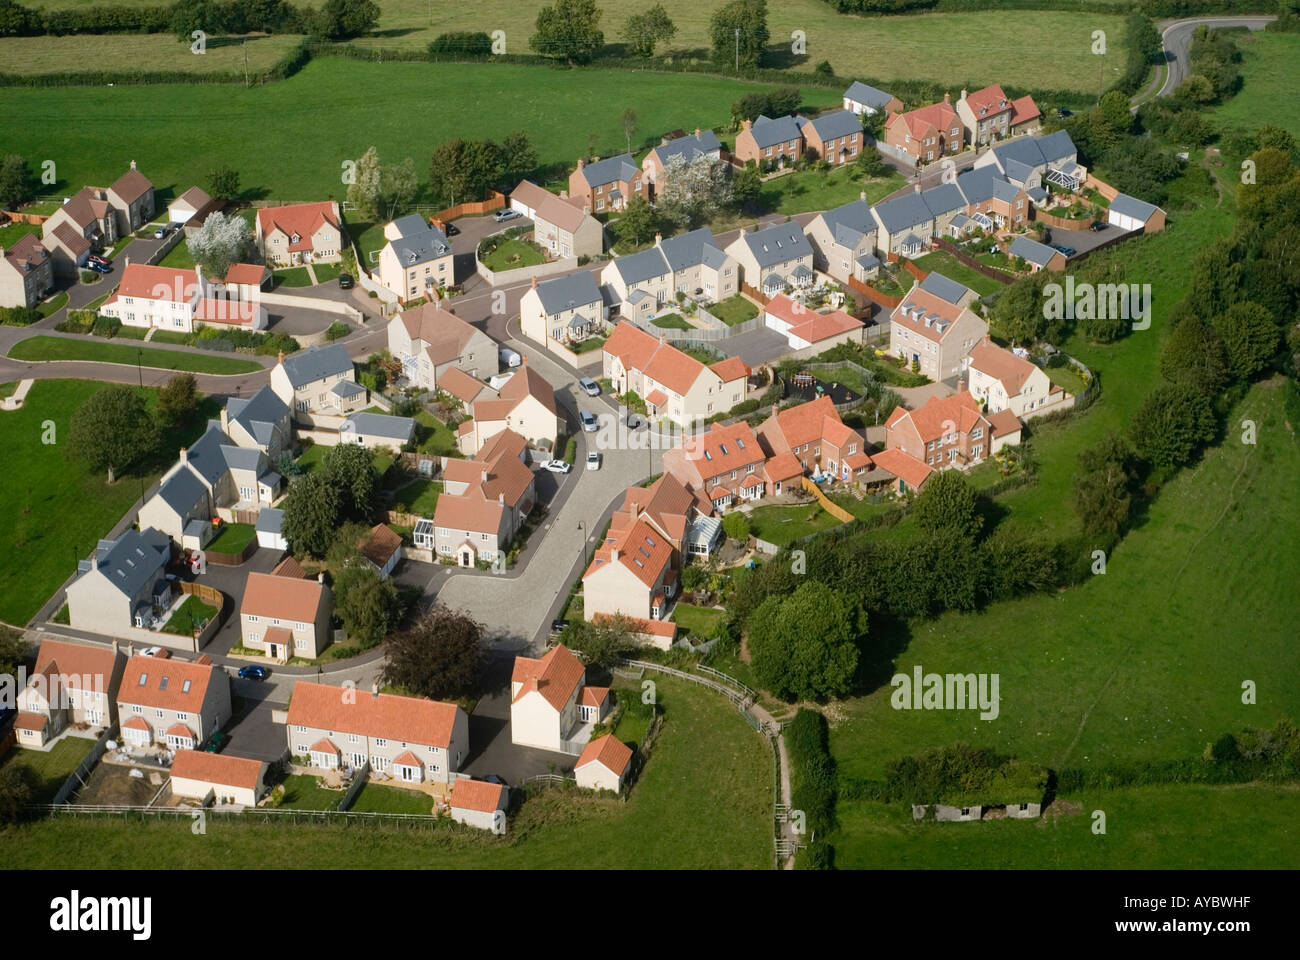 Aerial view of a new housing project on greenfield land Stock Photo